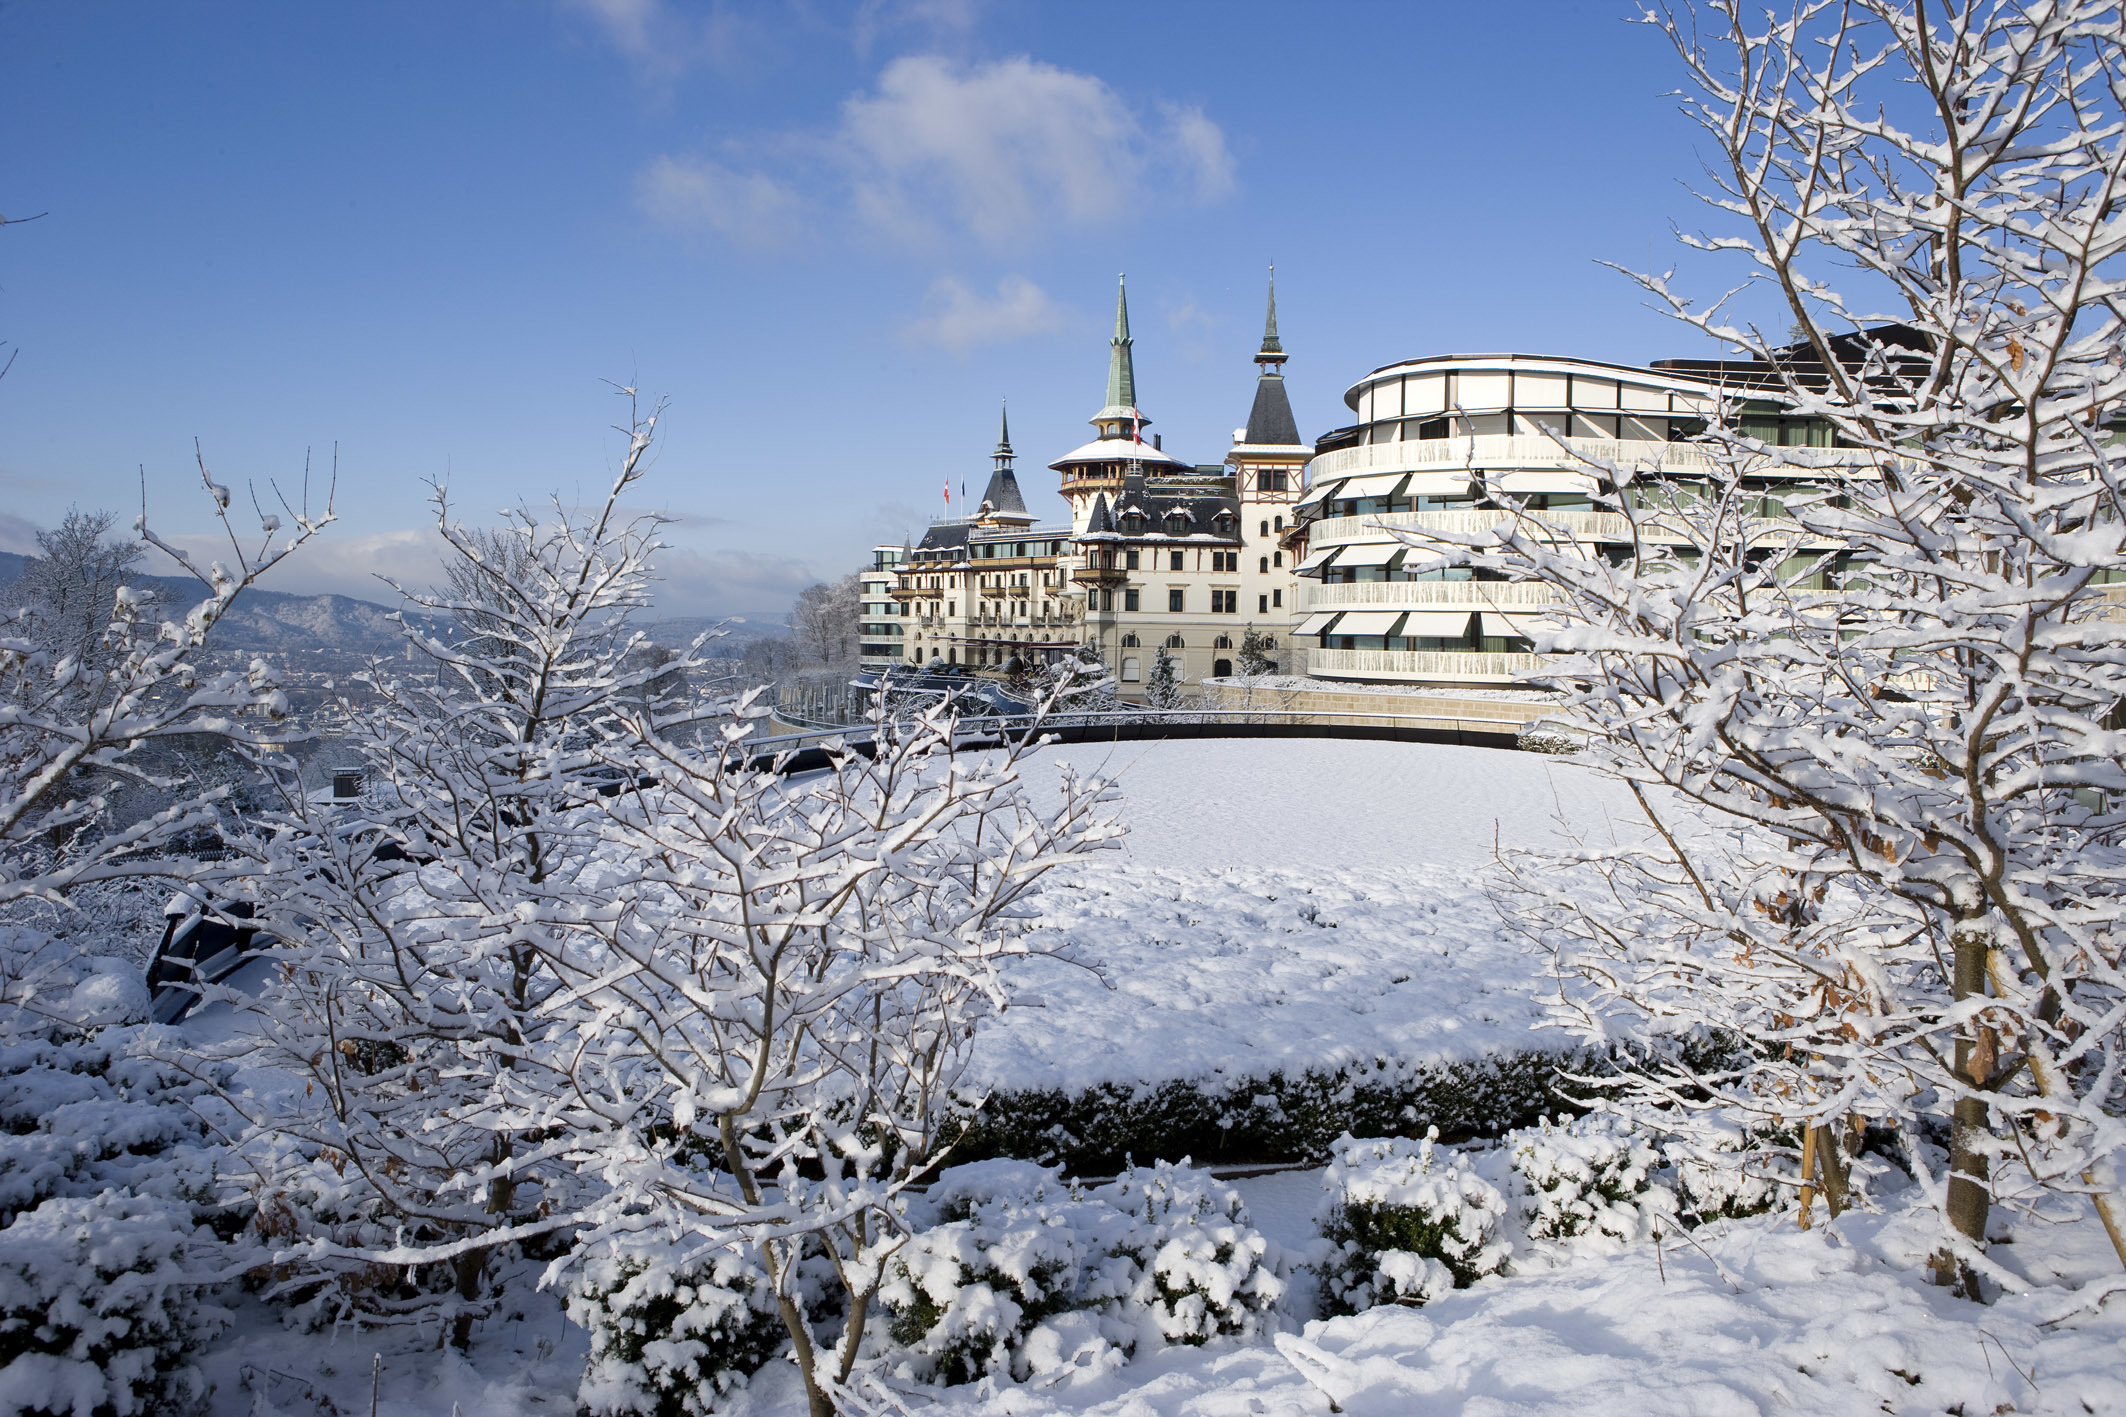 The Dolder Grand is a luxury hotel and spa in Zurich